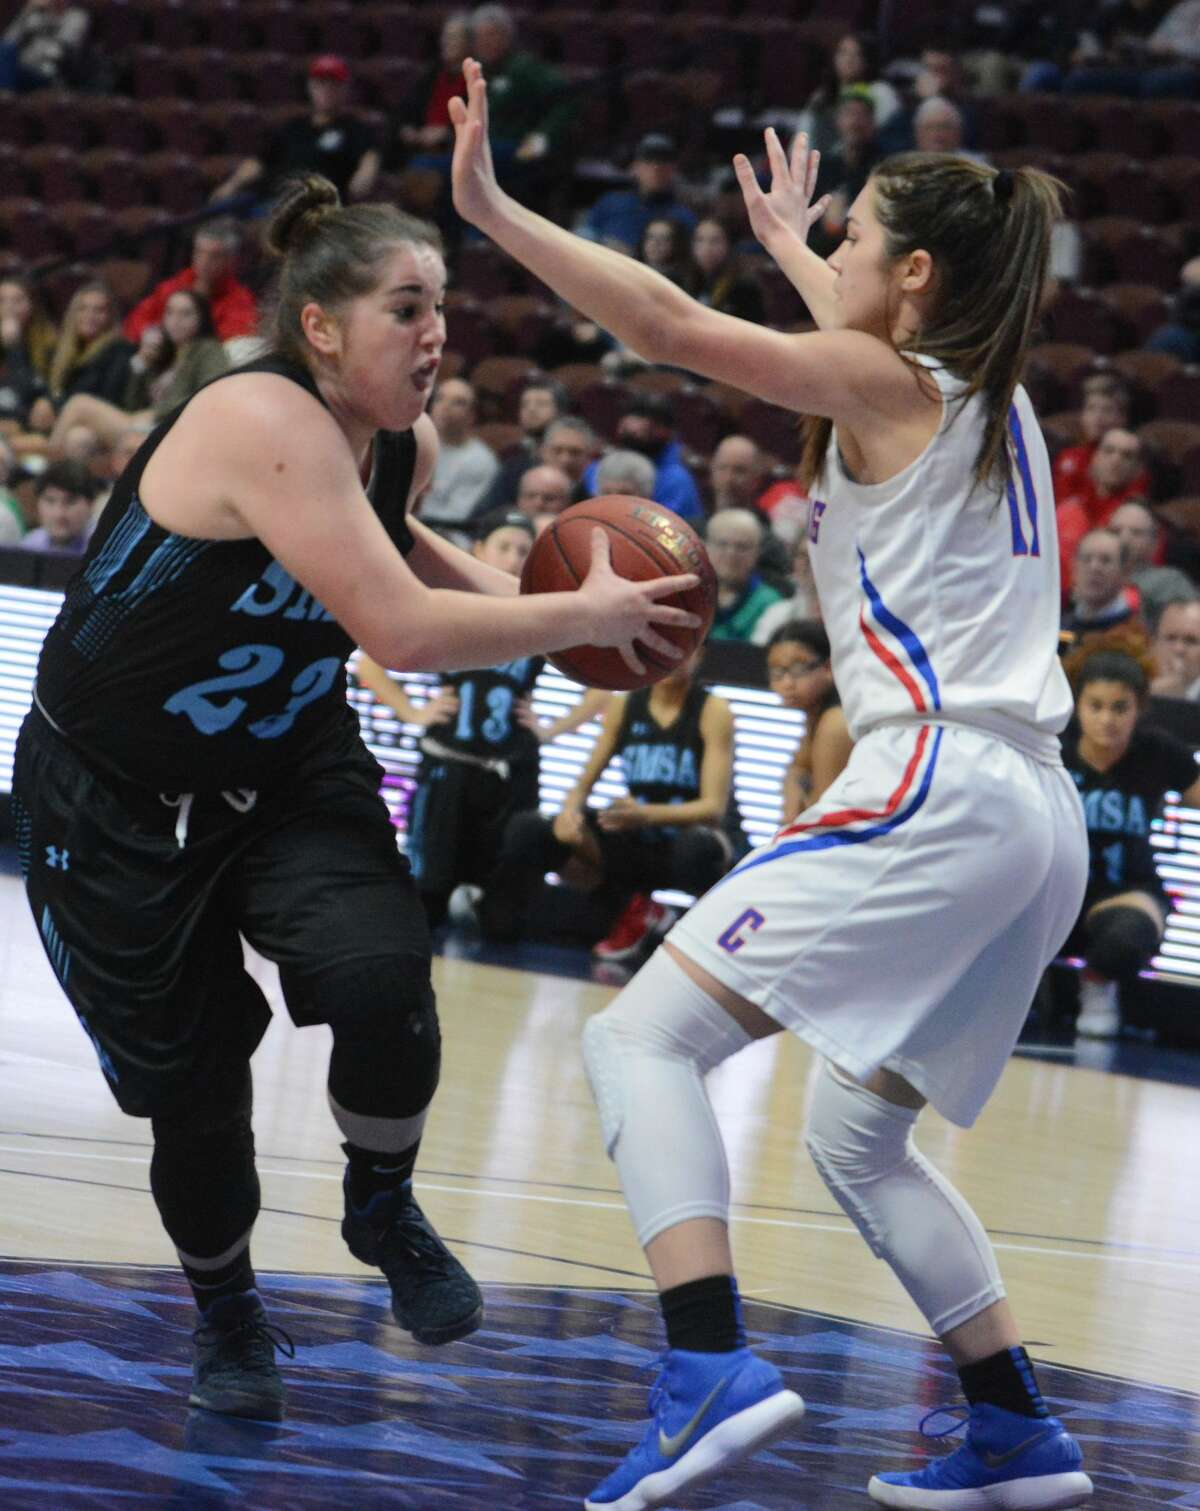 The Coginchaug girls basketball team defeated SMSA, 71-42 to win the Class S state championship Saturday, March 17, 2018.